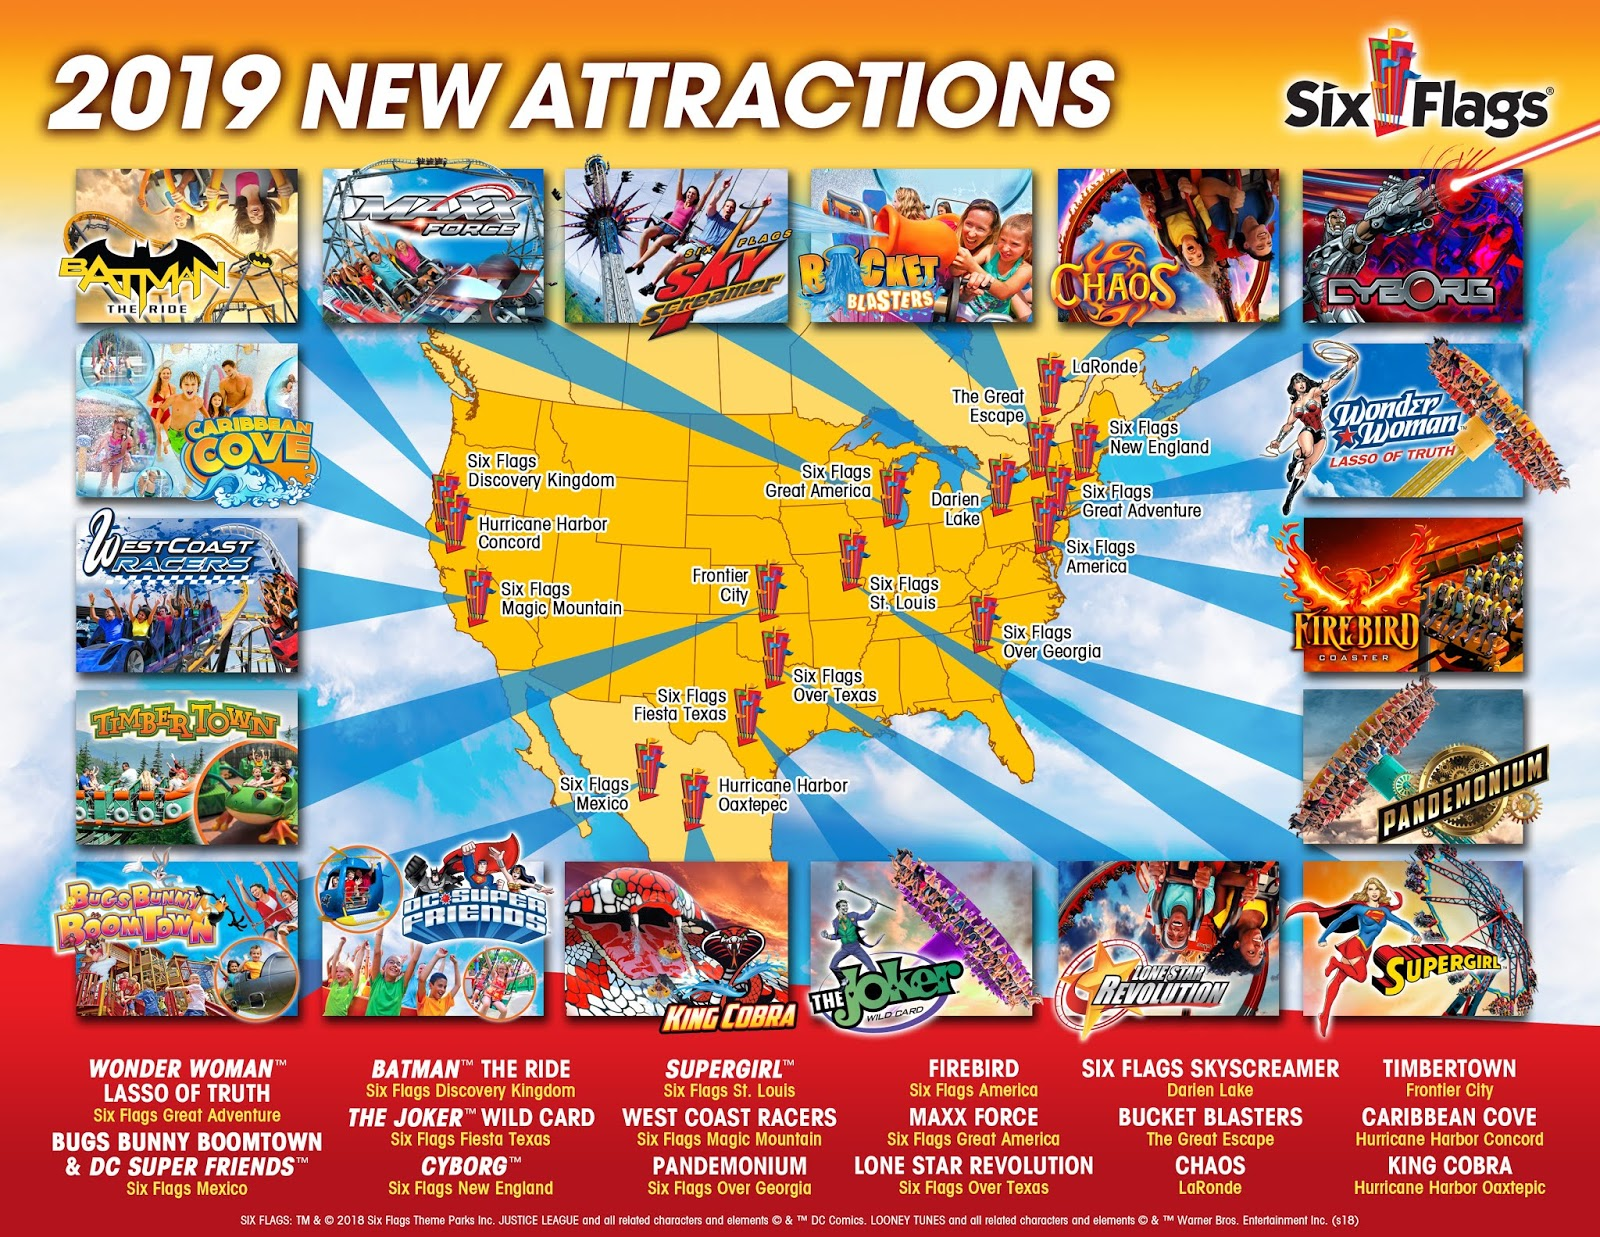 EVERY 2019 Six Flags New Attraction Confirmed - New Rides ...